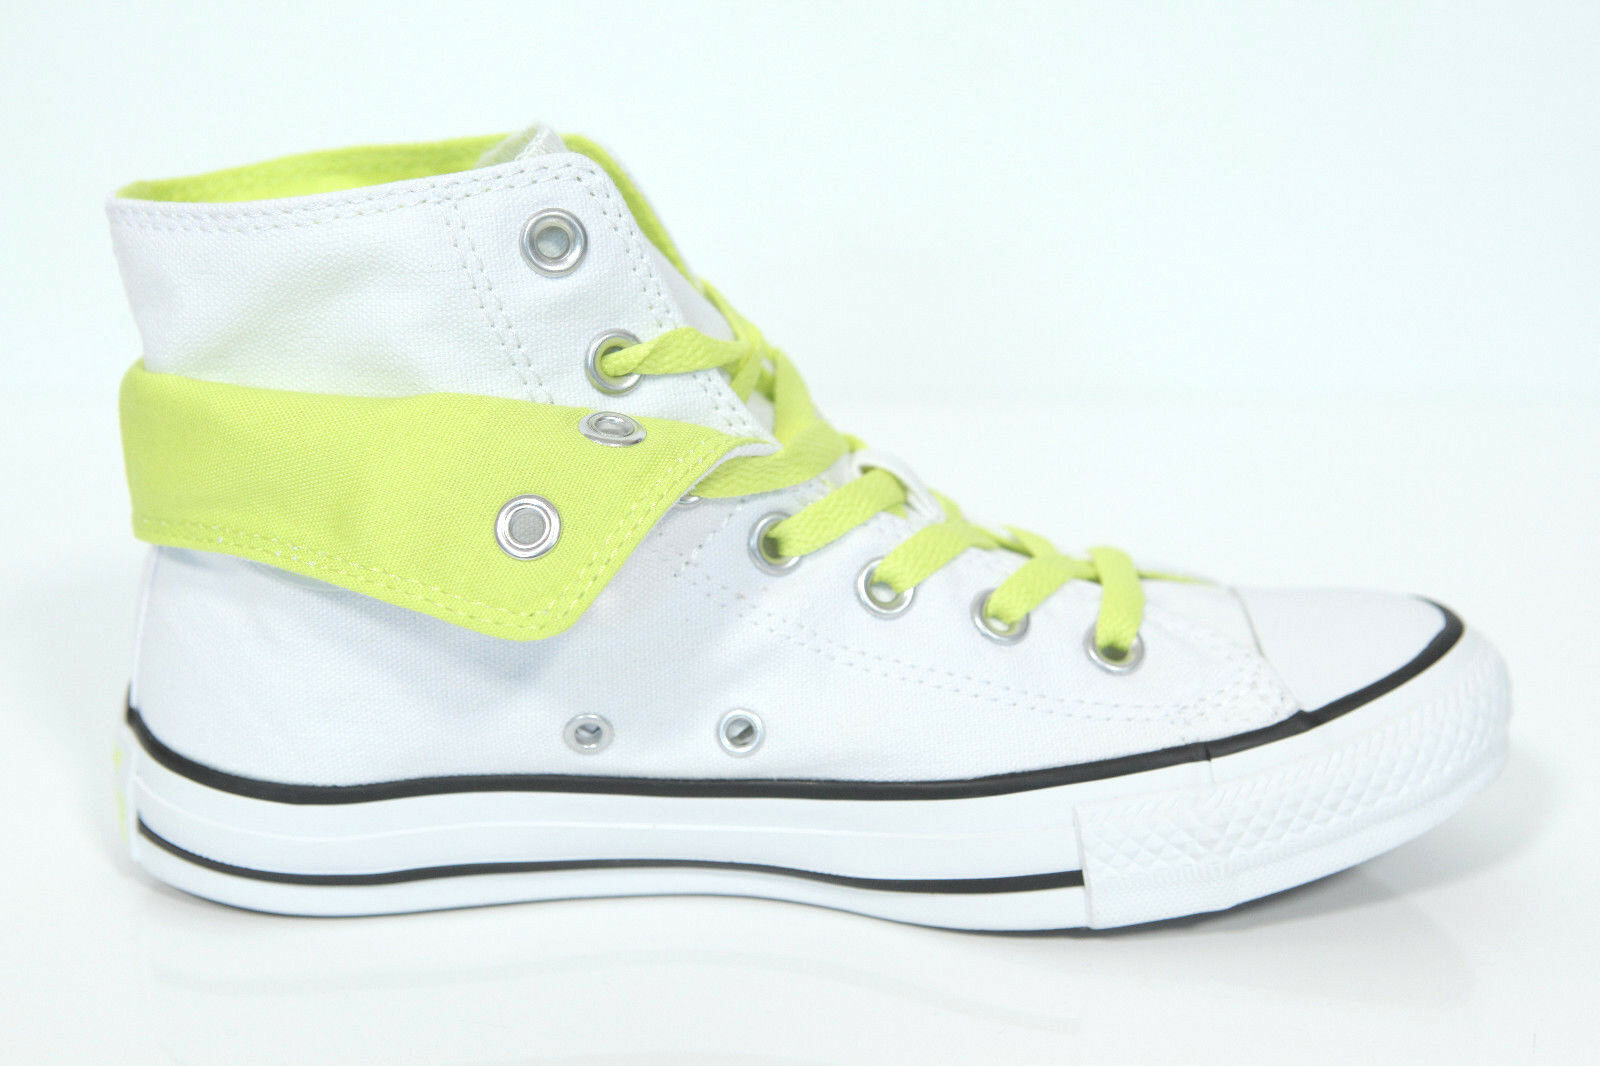 Neu All Star Converse Chucks Hi Two Fold weiß citron Sneaker 542590c Retro